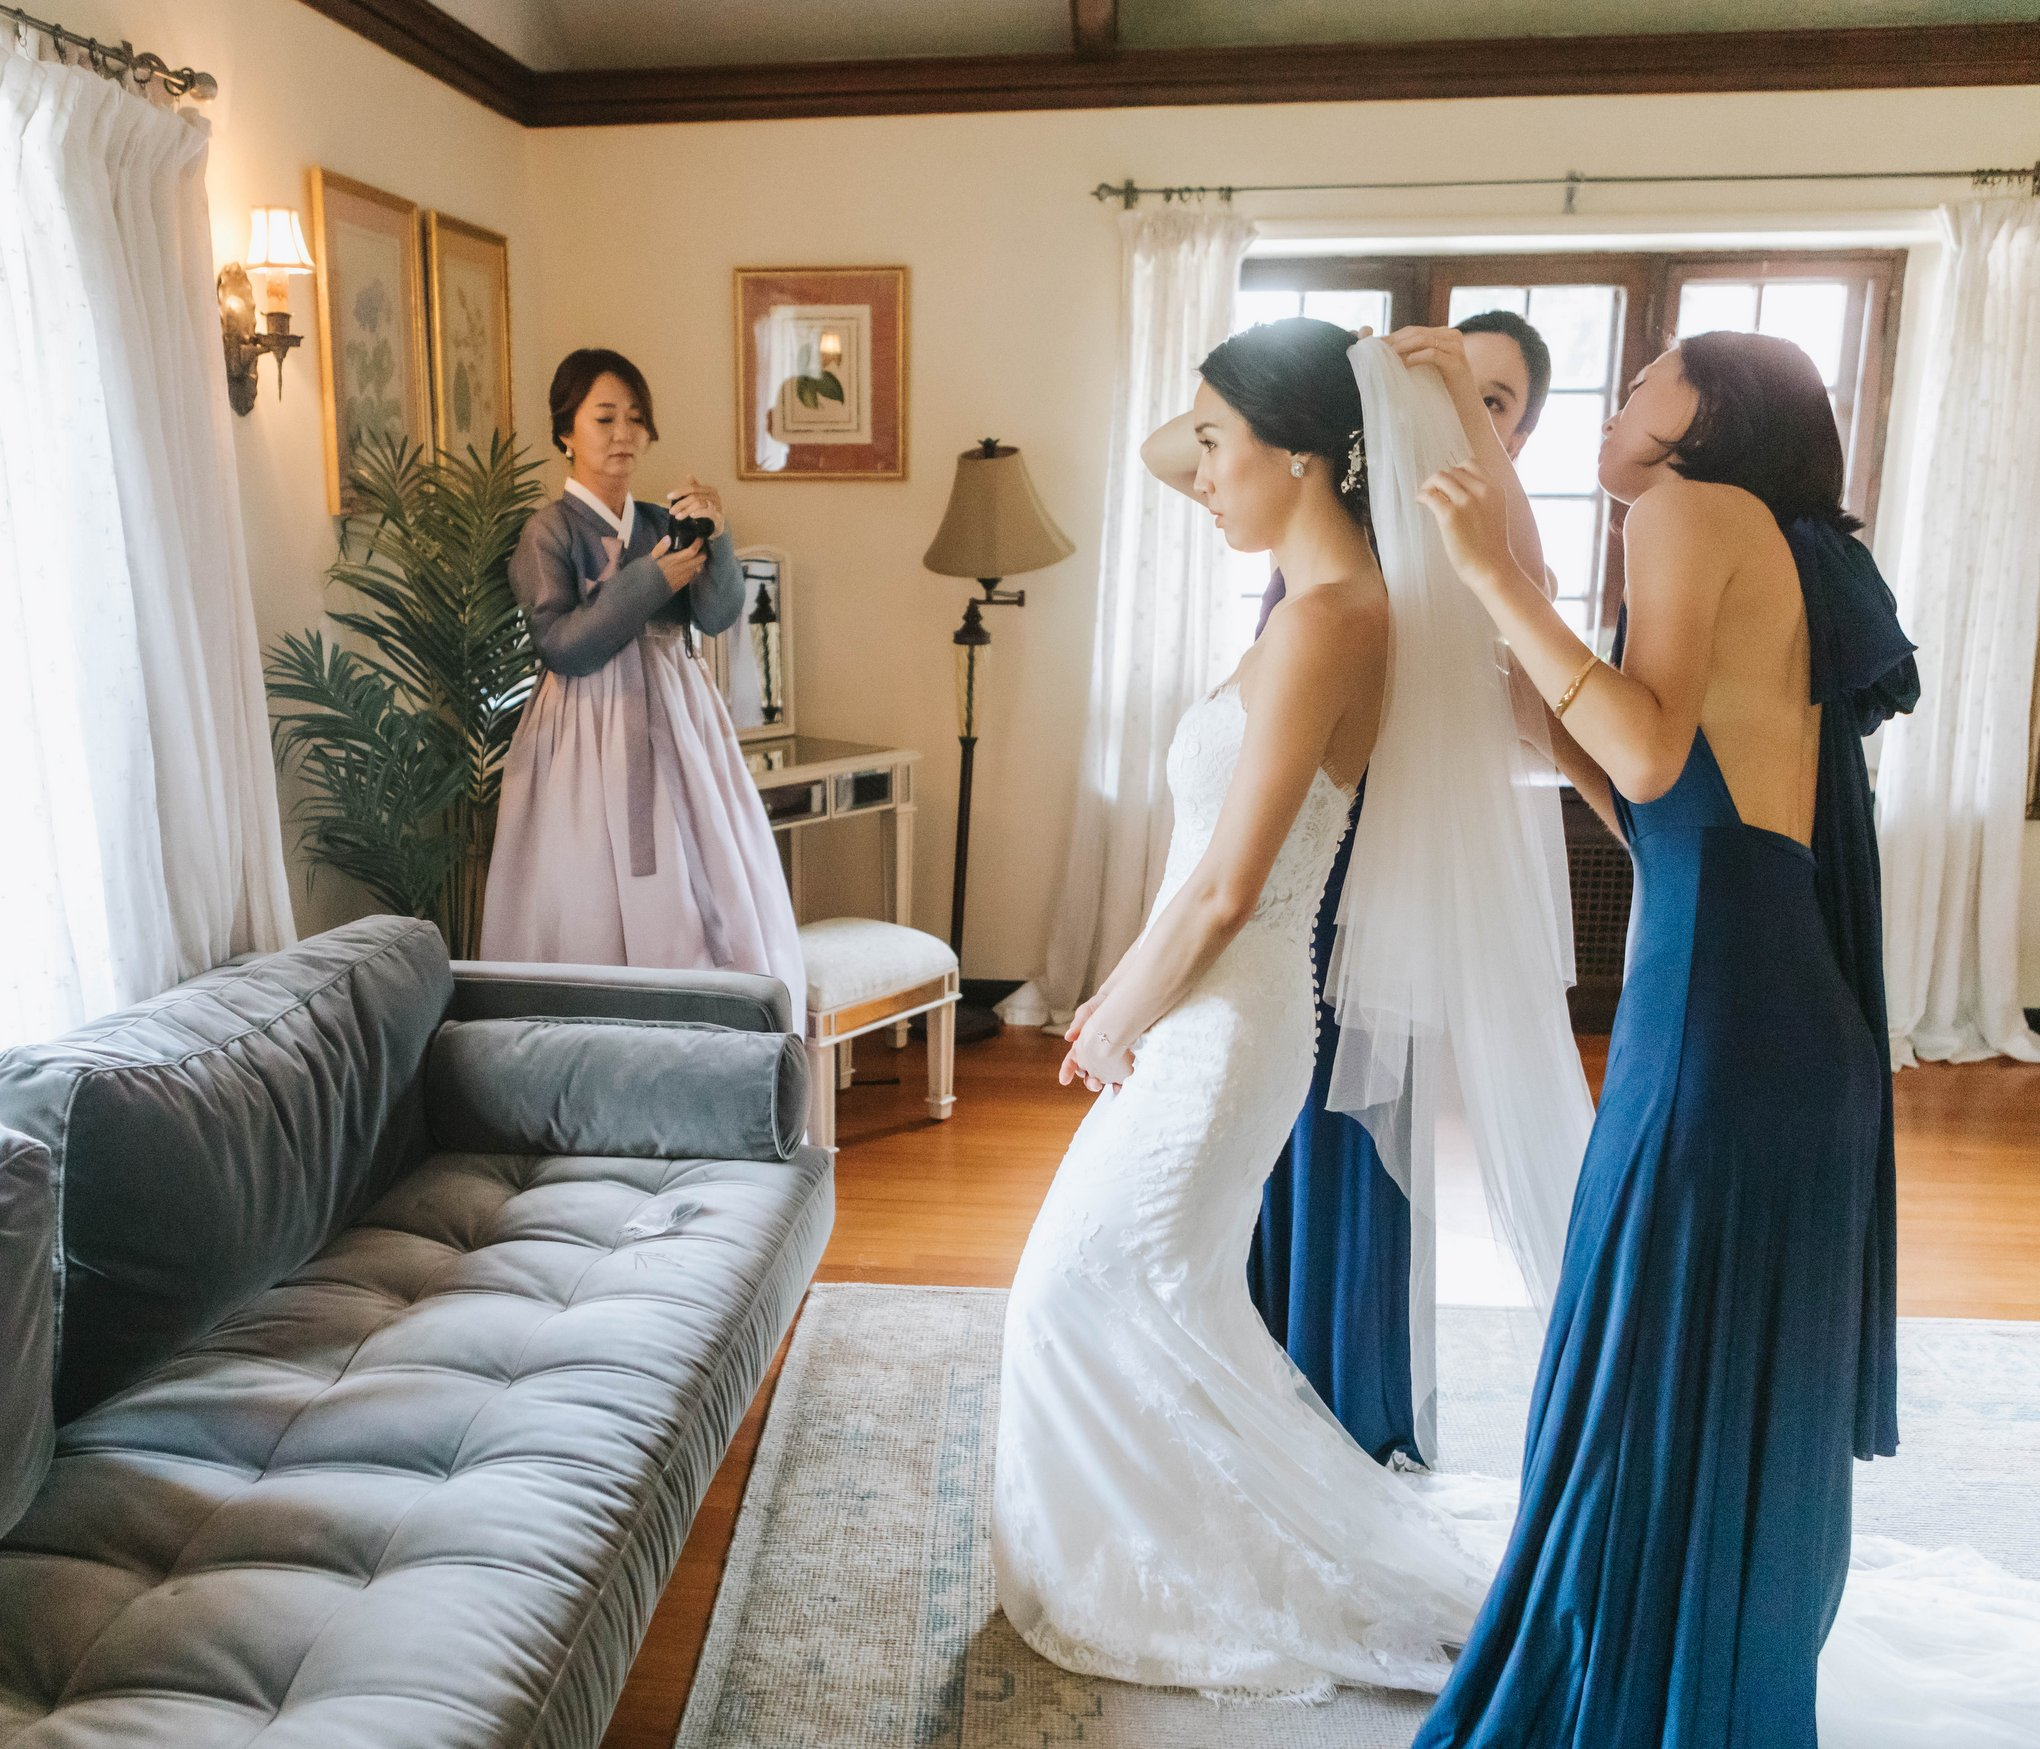 Willowdale-Estate-Korean-Wedding-Boston-Lena-Mirisola-5.jpg